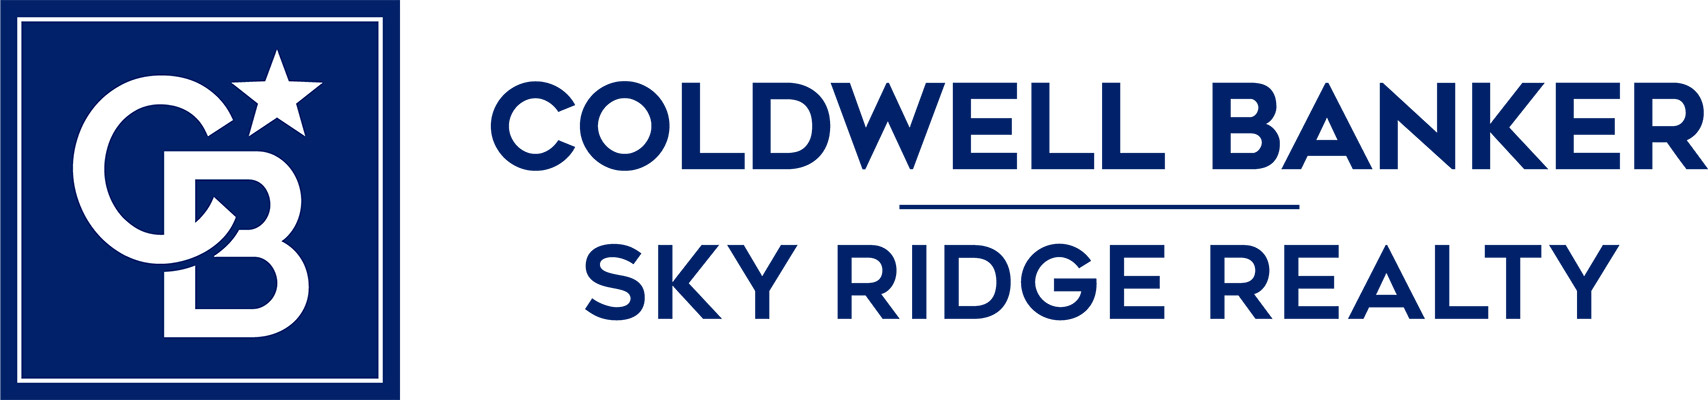 Sue Weaver - Coldwell Banker Sky Ridge Realty